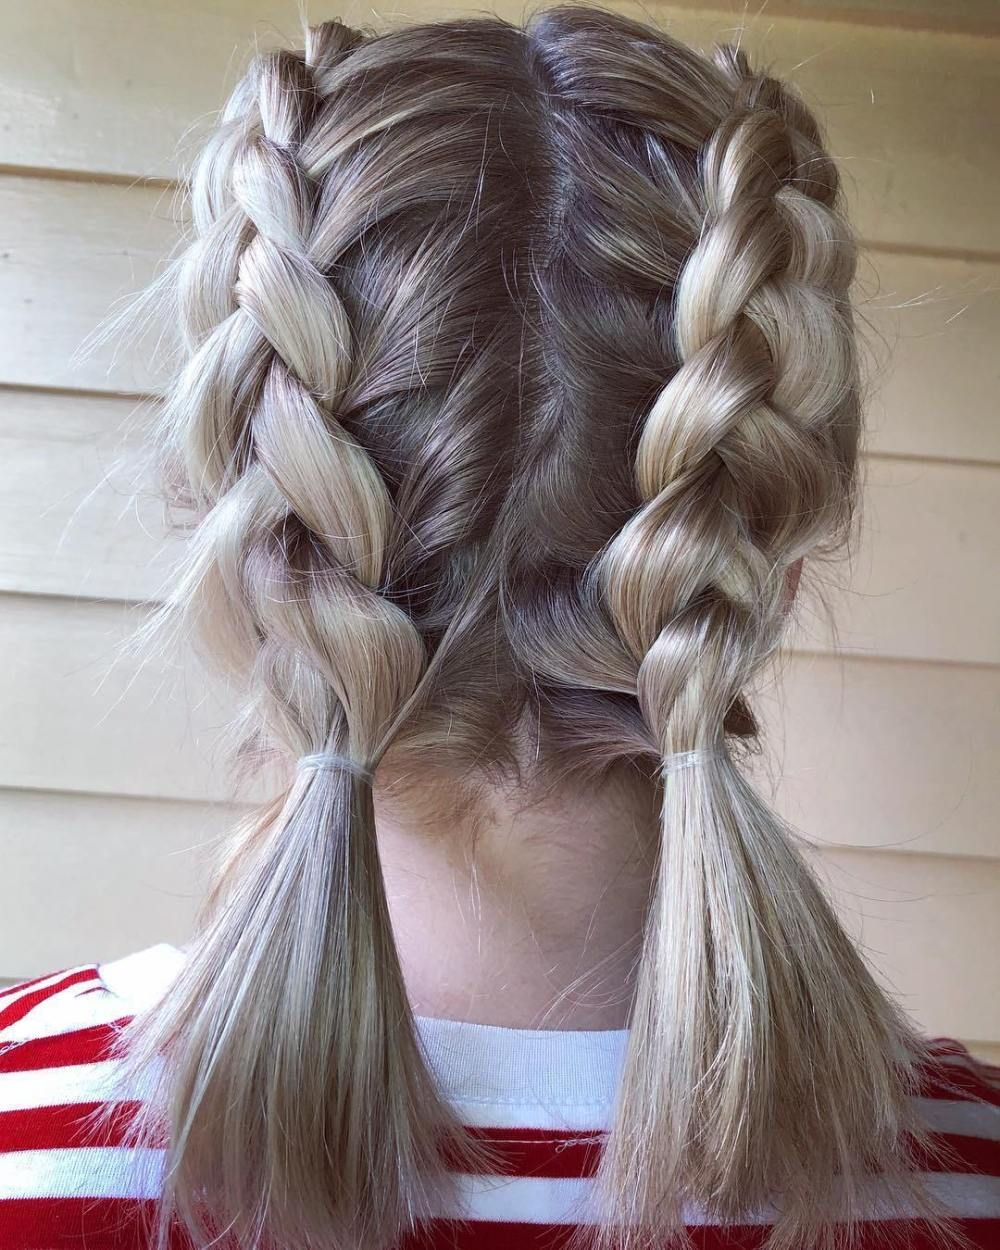 20 Trendy Back to School Hairstyles #backtoschoolhairstyles